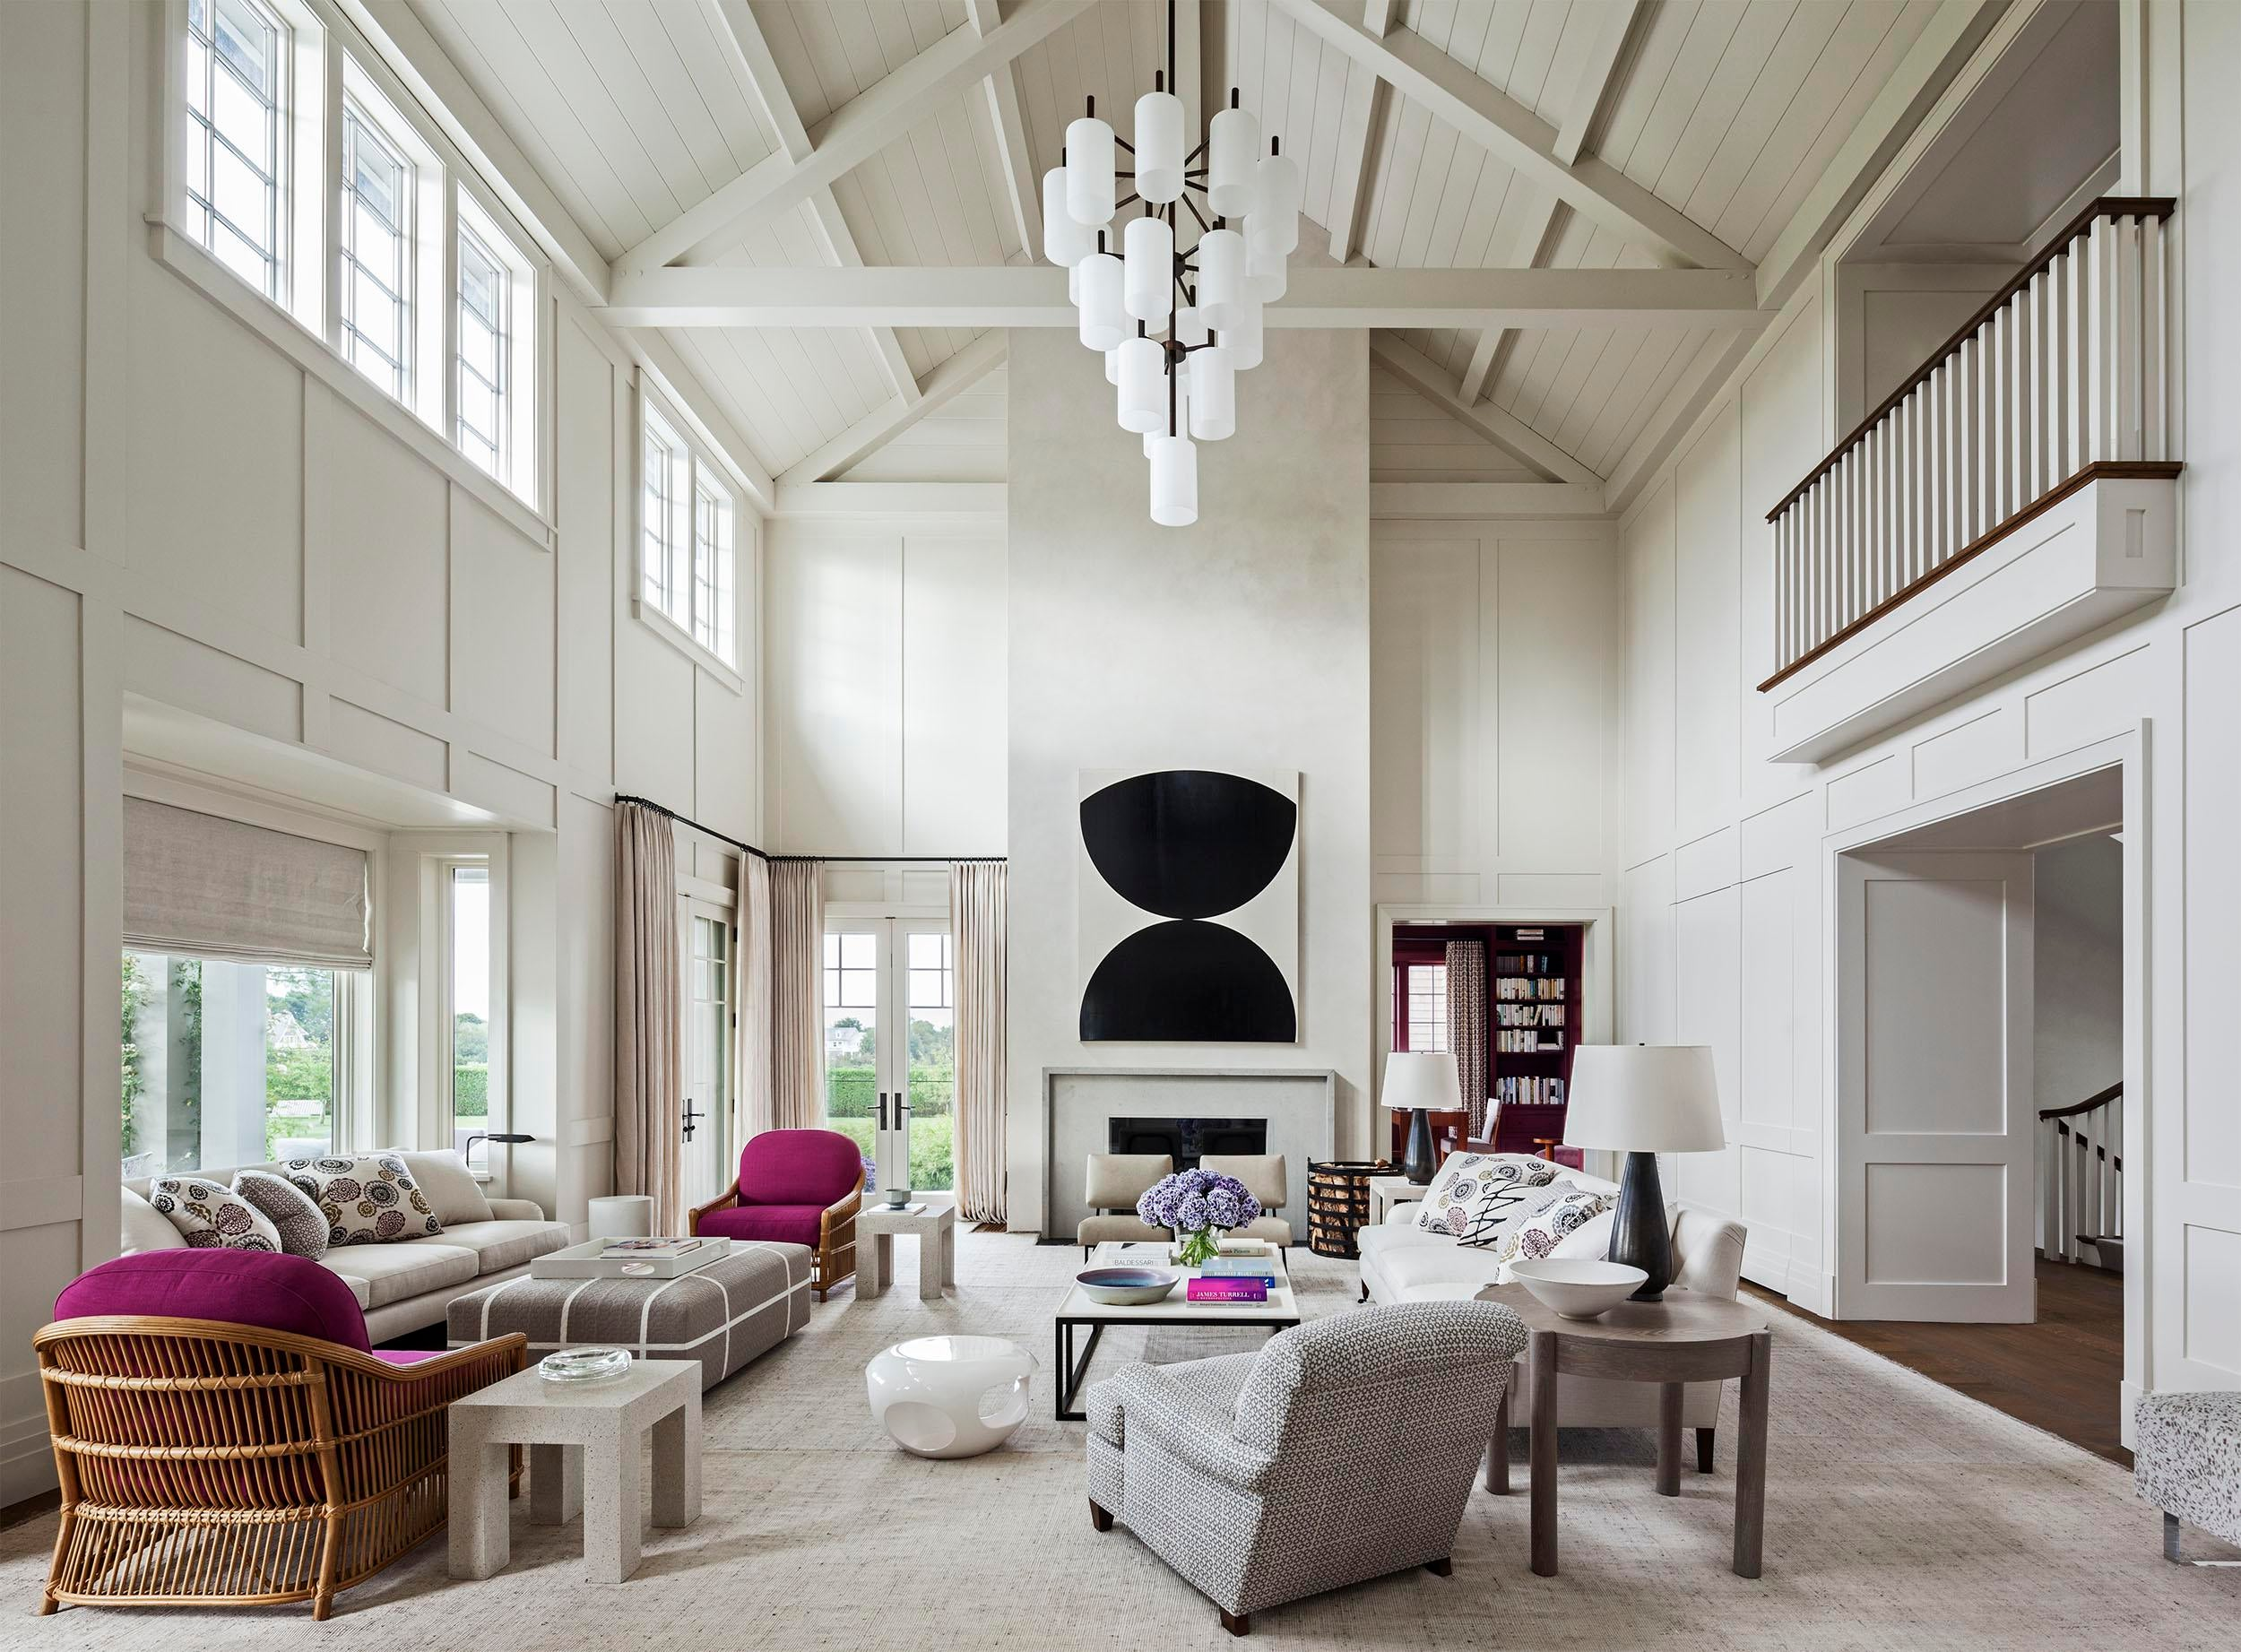 High Quality 24 Chic Spaces With Cathedral Ceilings